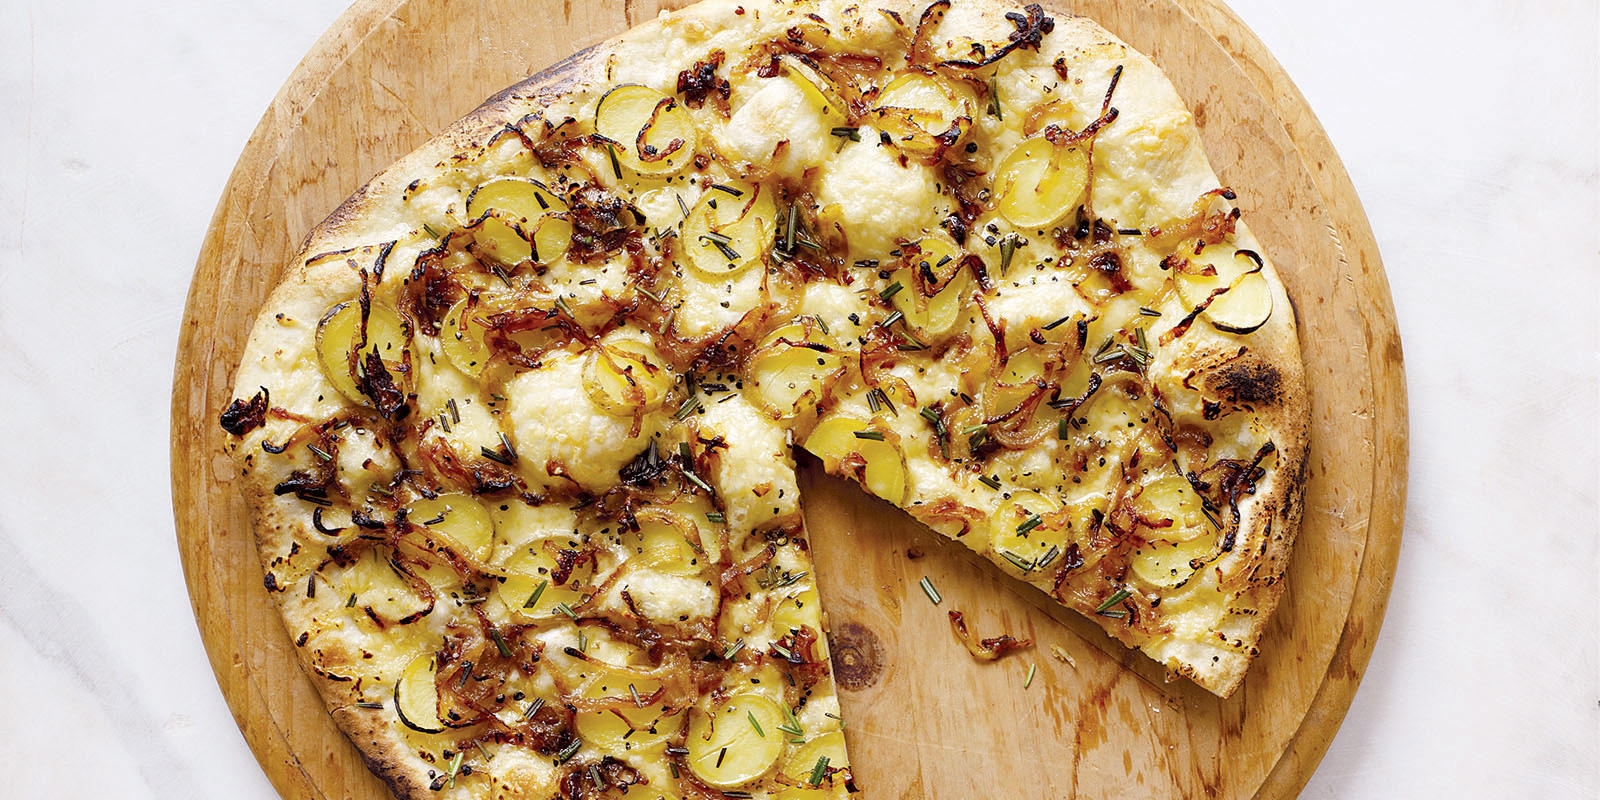 Sobeys | Potato, Caramelized Onion & Rosemary Pizza